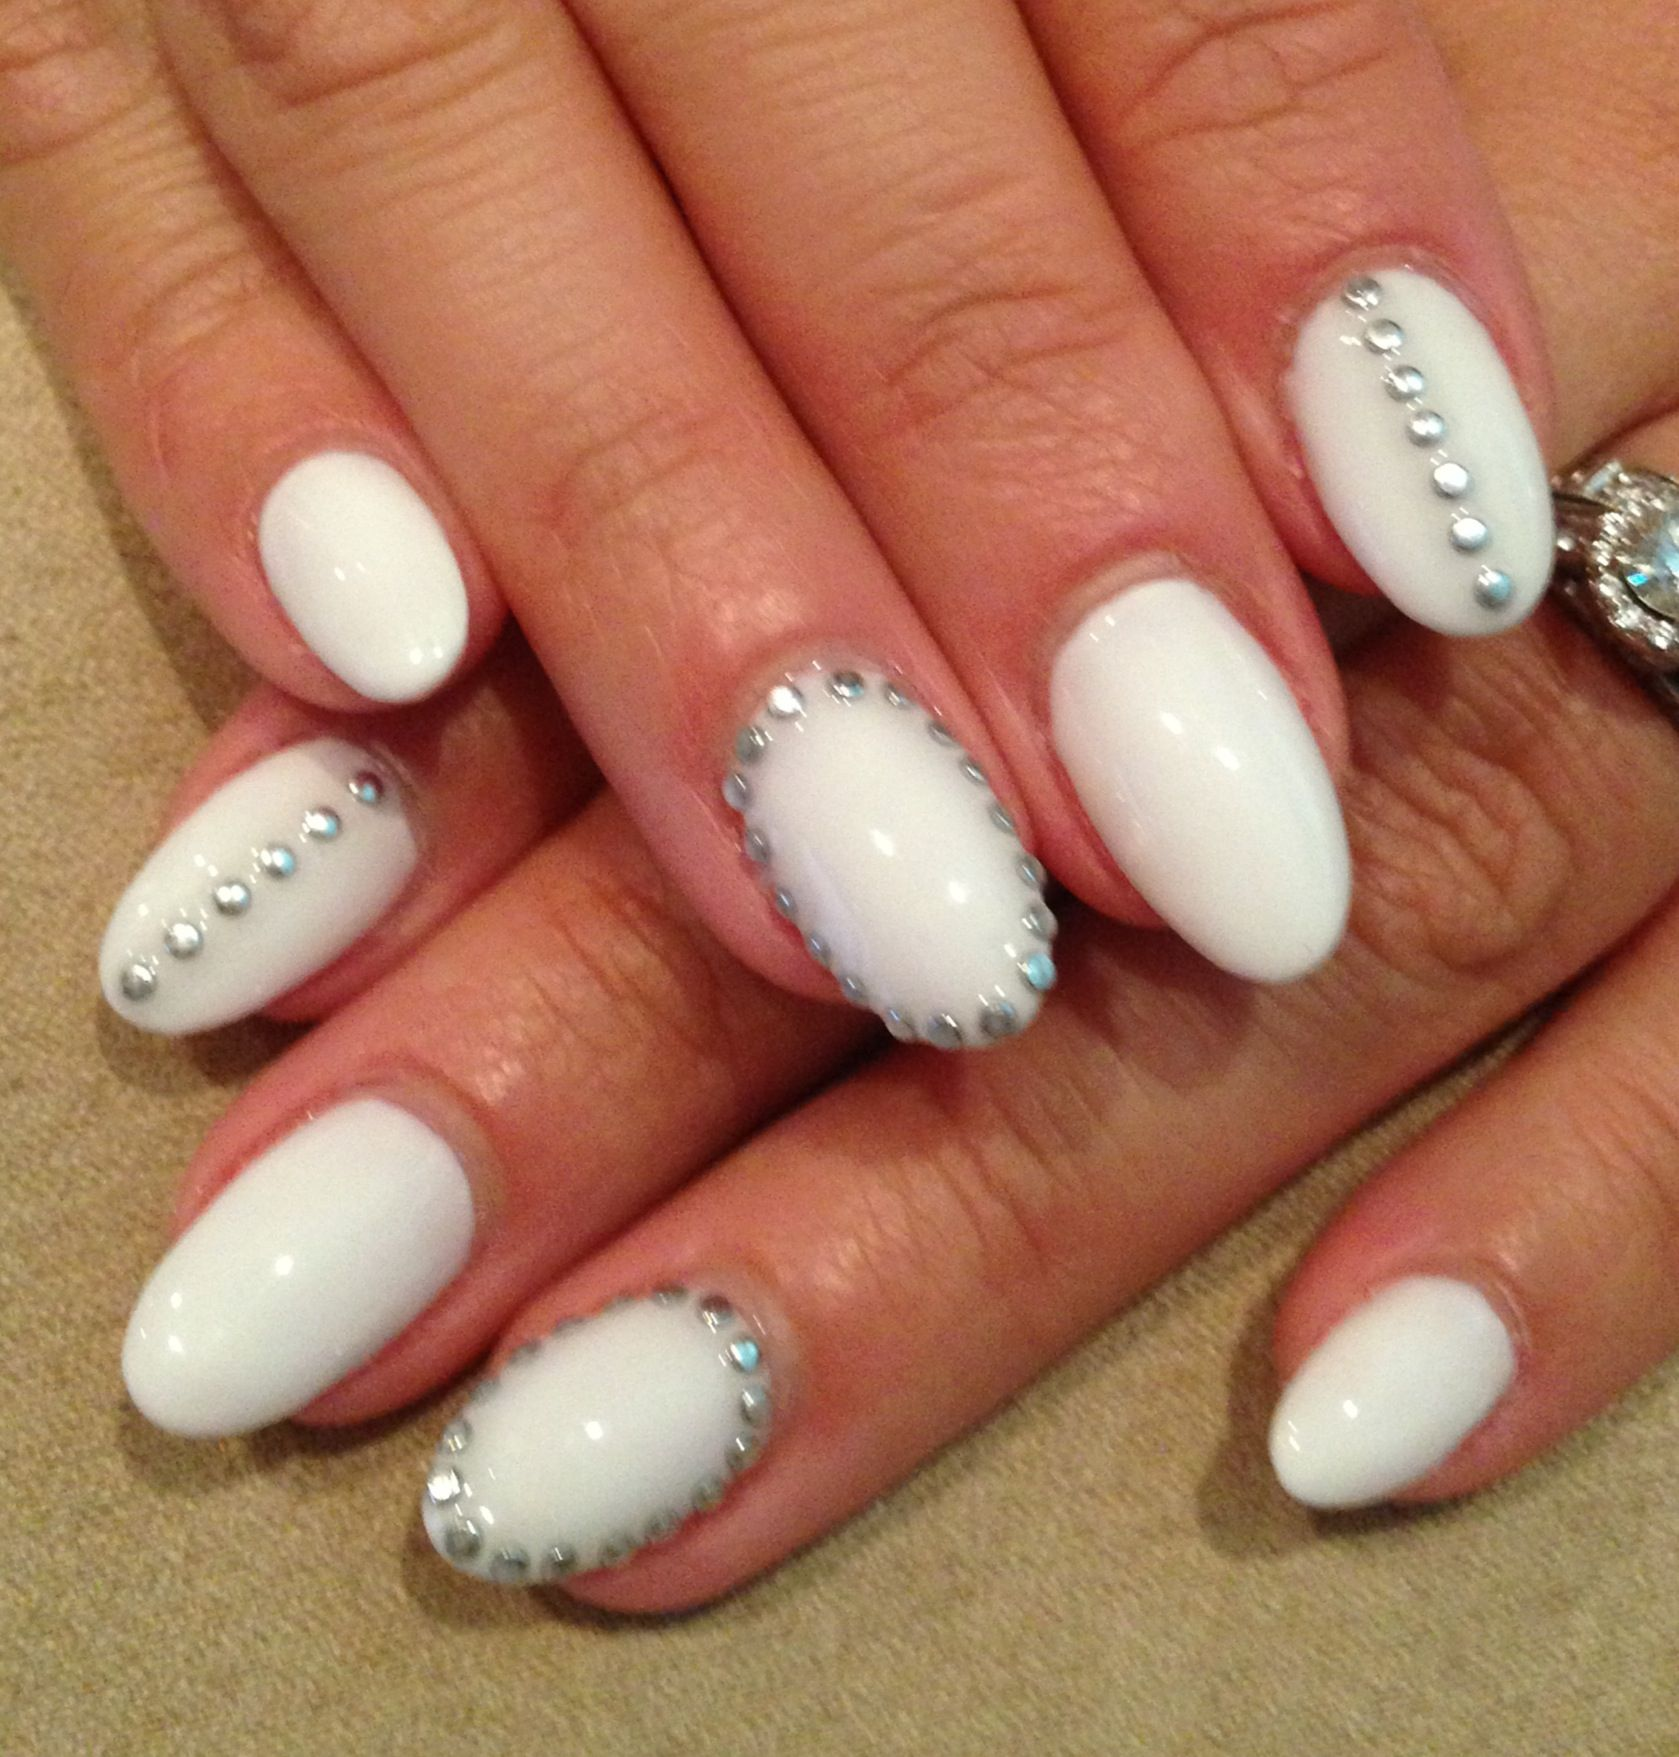 White with studs. Really like the almond nail shape on this mani ...